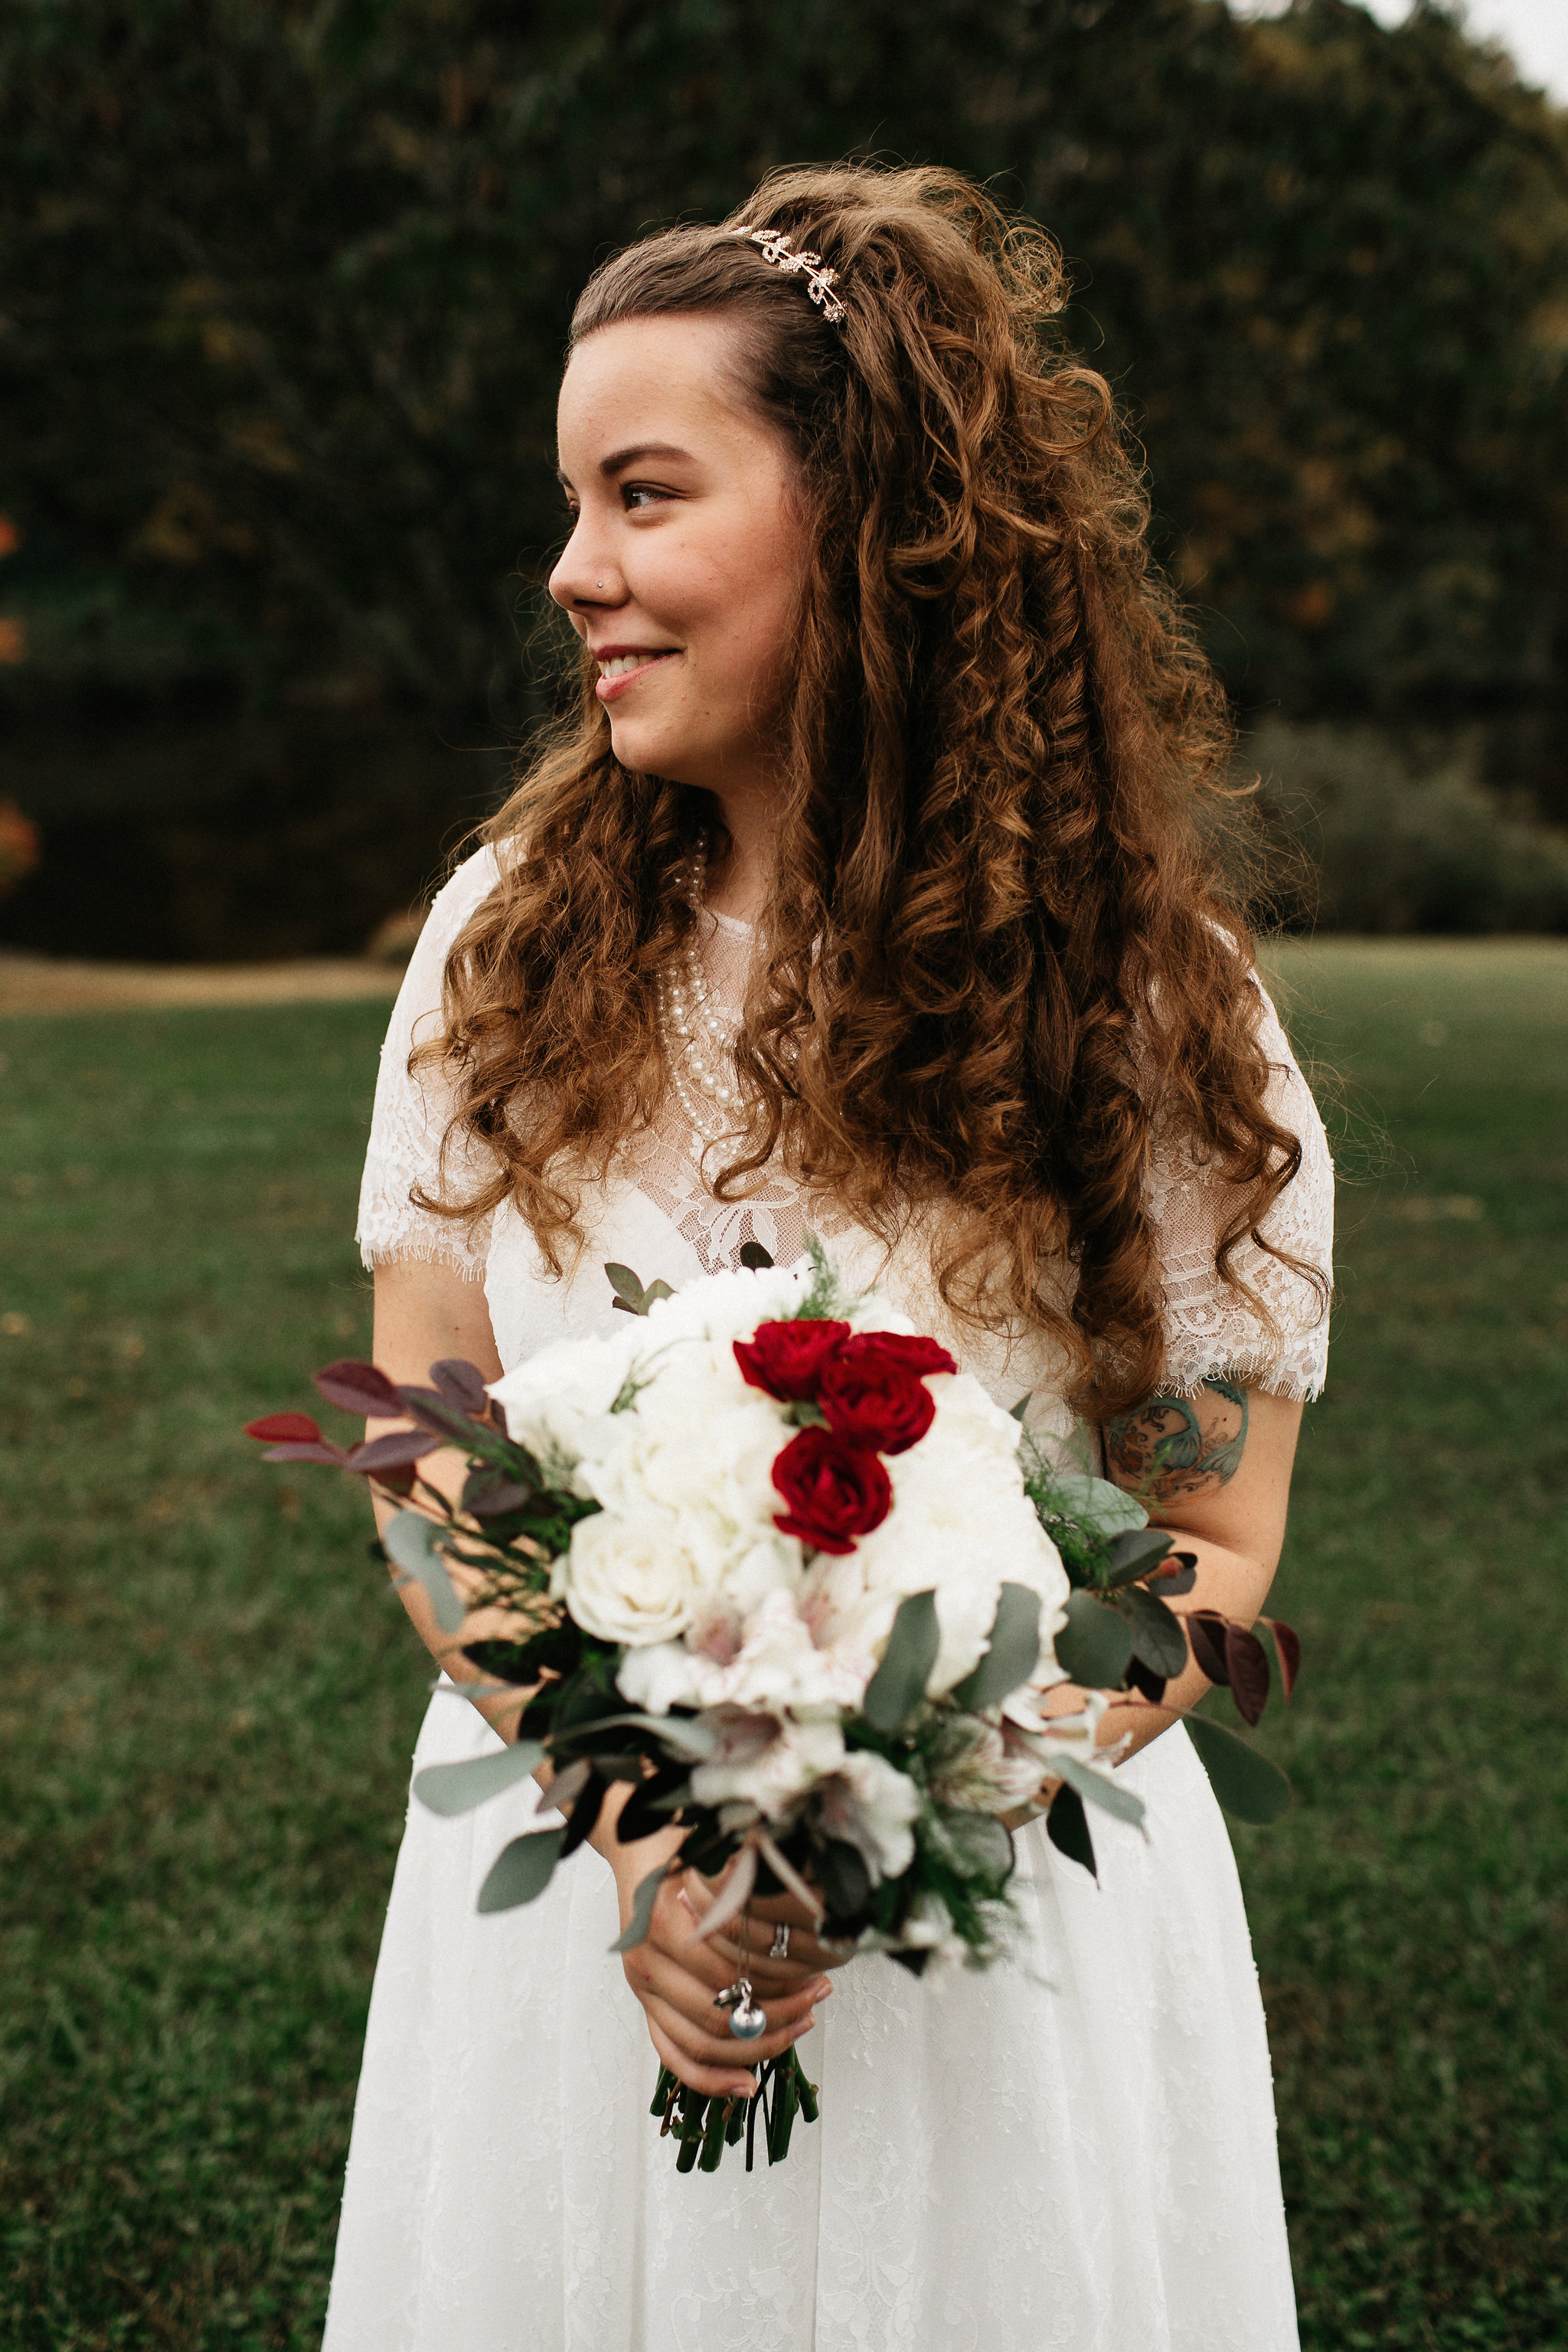 Caitlin&CodyMarried2017-11-03at19.19.39PM47.jpg